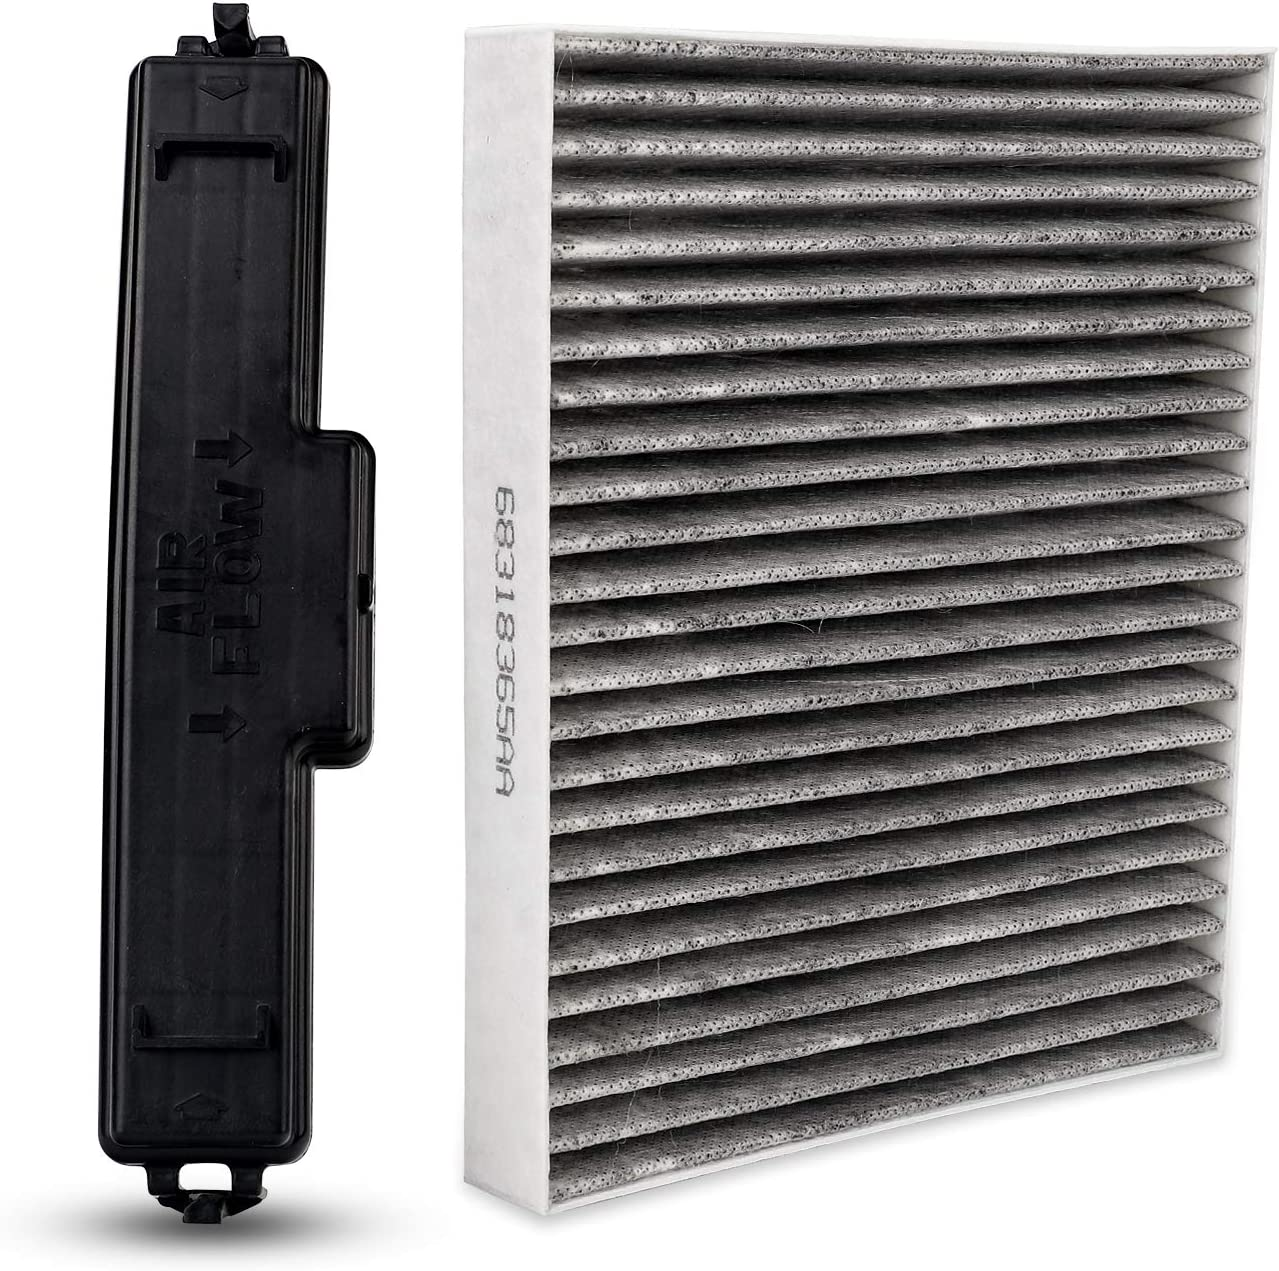 Buy 3mirrors Carbon Cabin Air Filter Ac Filter Access Door Cover Compatible With 2016 2020 Dodge Ram 1500 2500 3500 2007 2012 Mazda Cx 7 Online In Indonesia B08ryhfkny